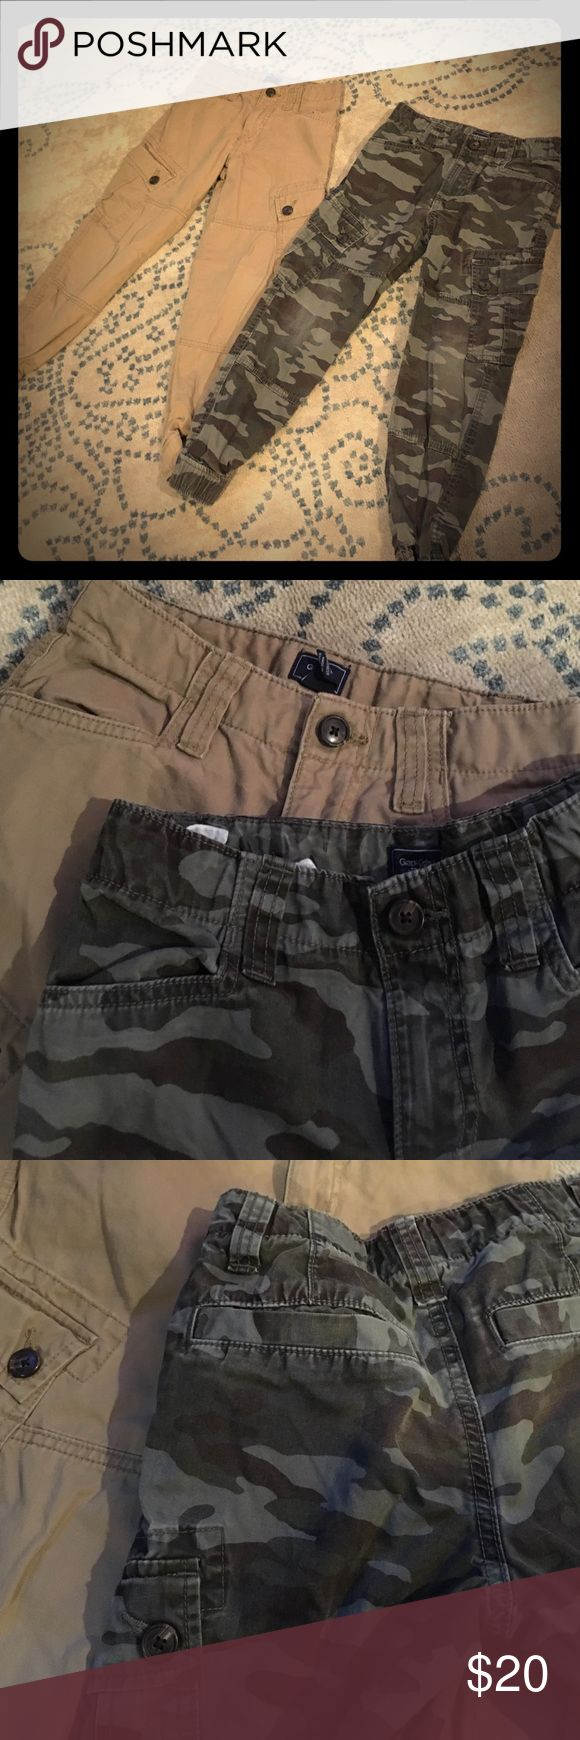 Boys slim cargo pants Boys cargo slim pants, adjustable waist, garter stretch in ankles, super cute, size 8..$20 for both GAP Bottoms Casual